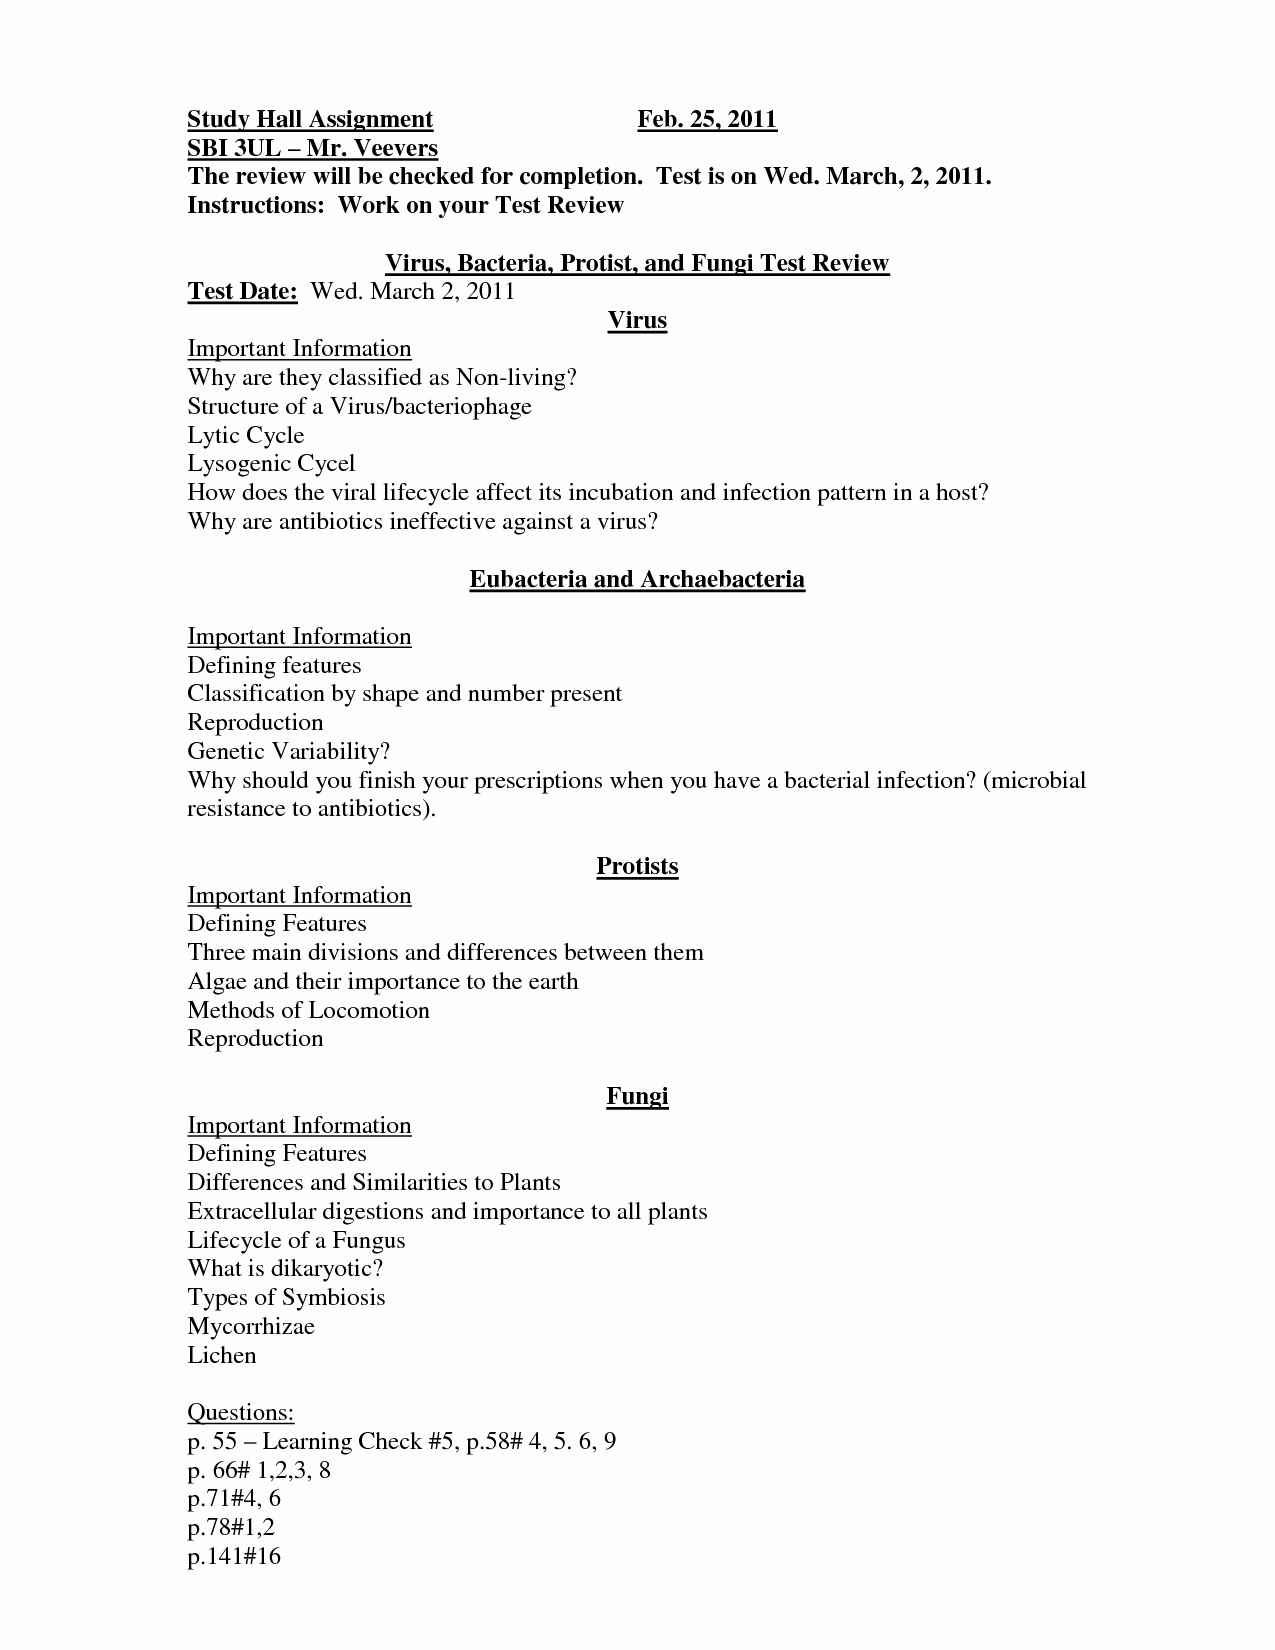 Virus and Bacteria Worksheet Elegant 14 Best Of Viruses and Bacteria Worksheets